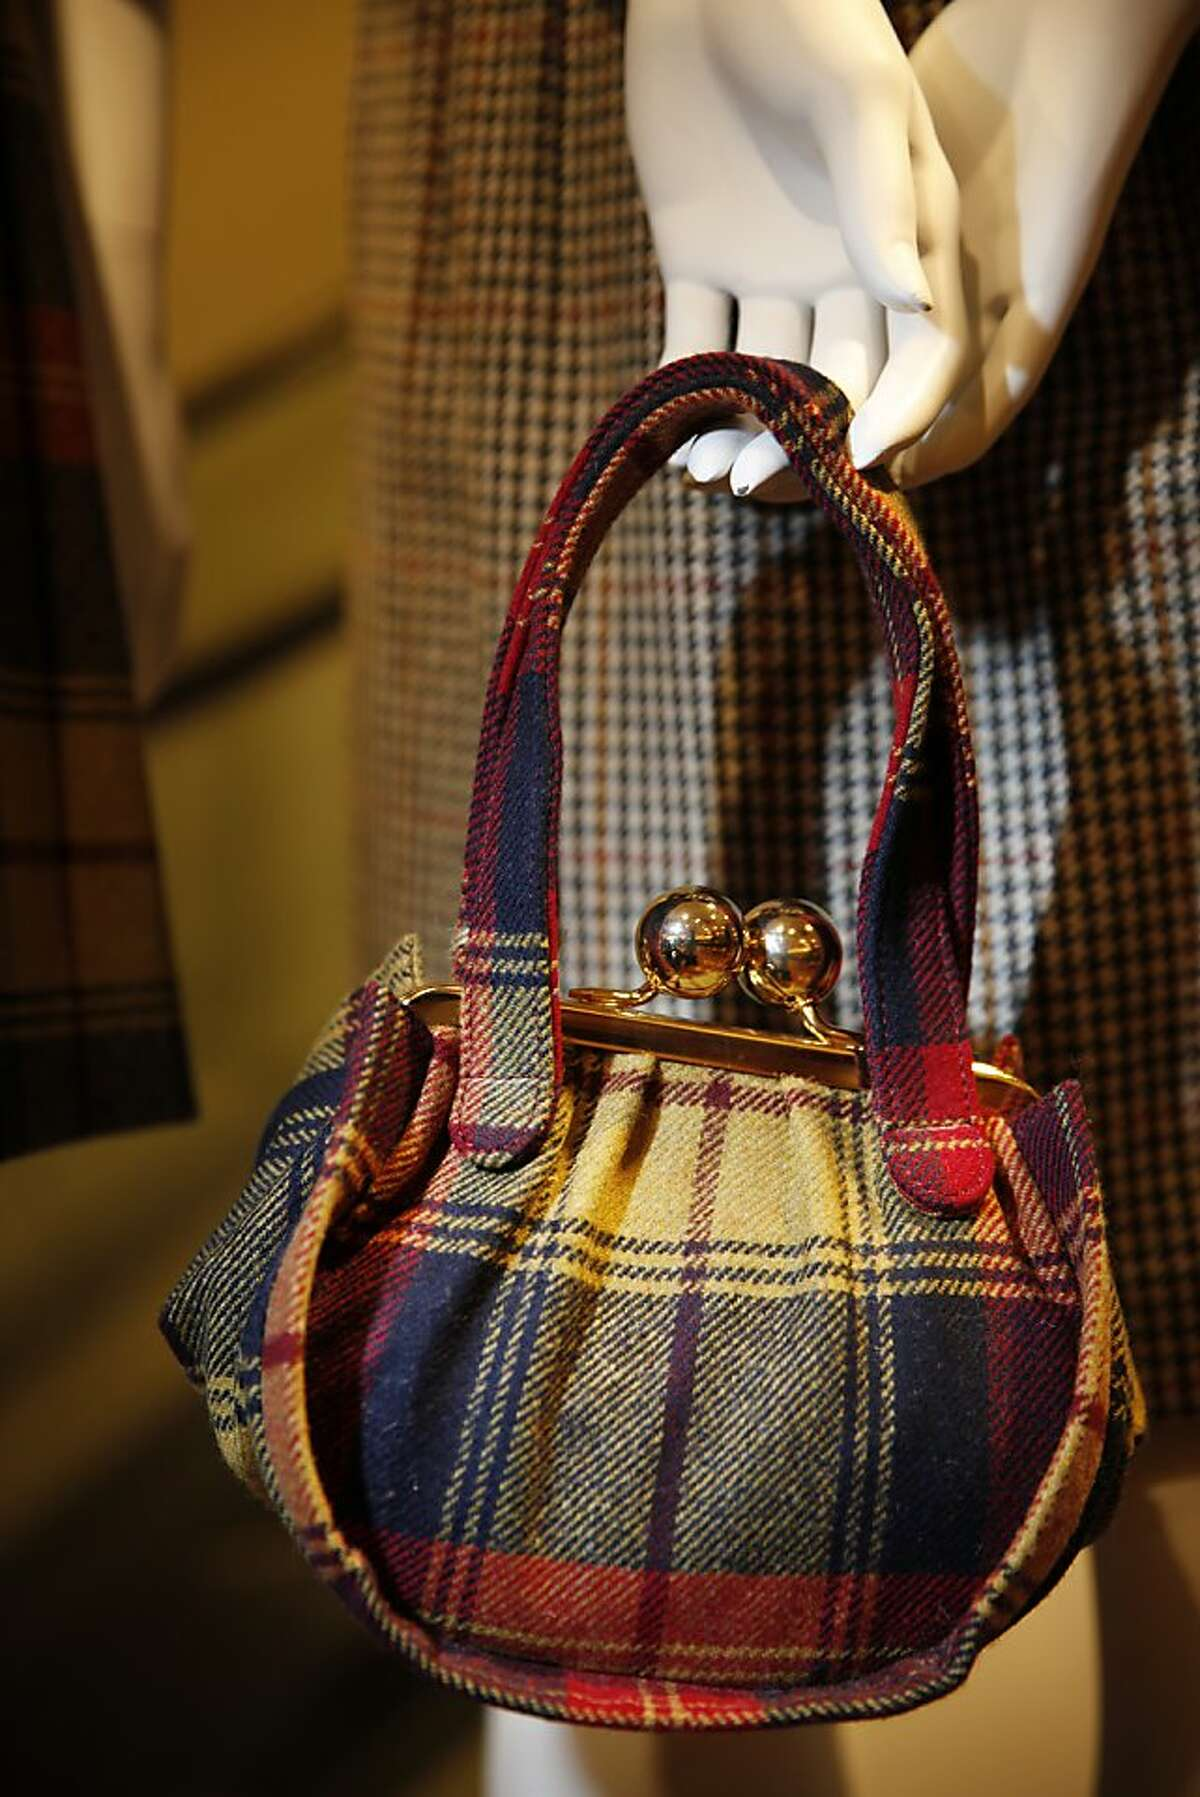 A purse is displayed in the new Brooks Brothers store in San Francisco, Calif.